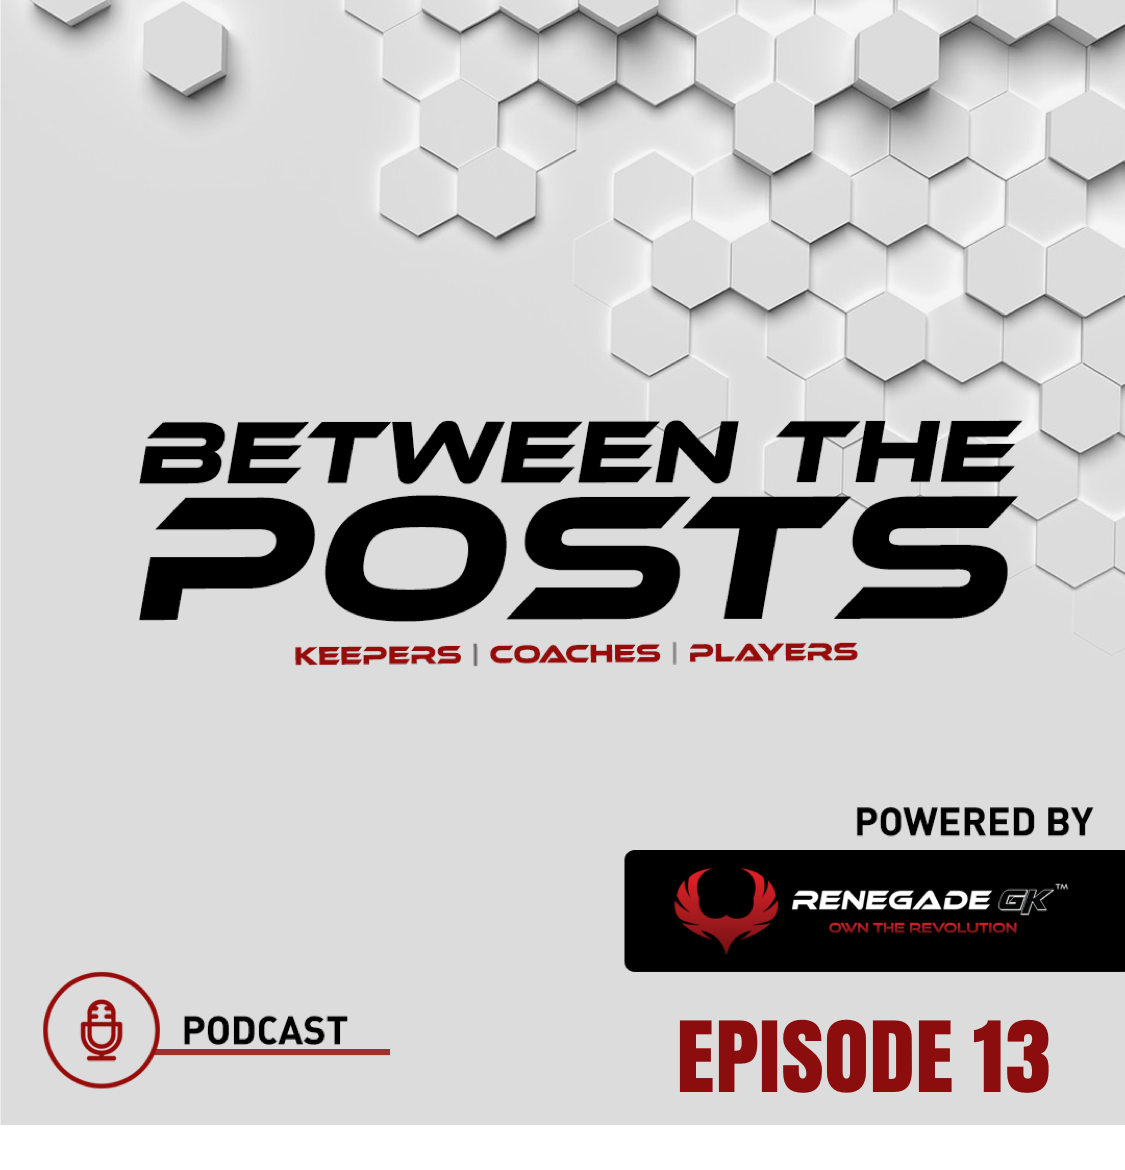 Between The Posts Ep. 13: So, You Want To Play College Soccer? |Part 1 of 2|